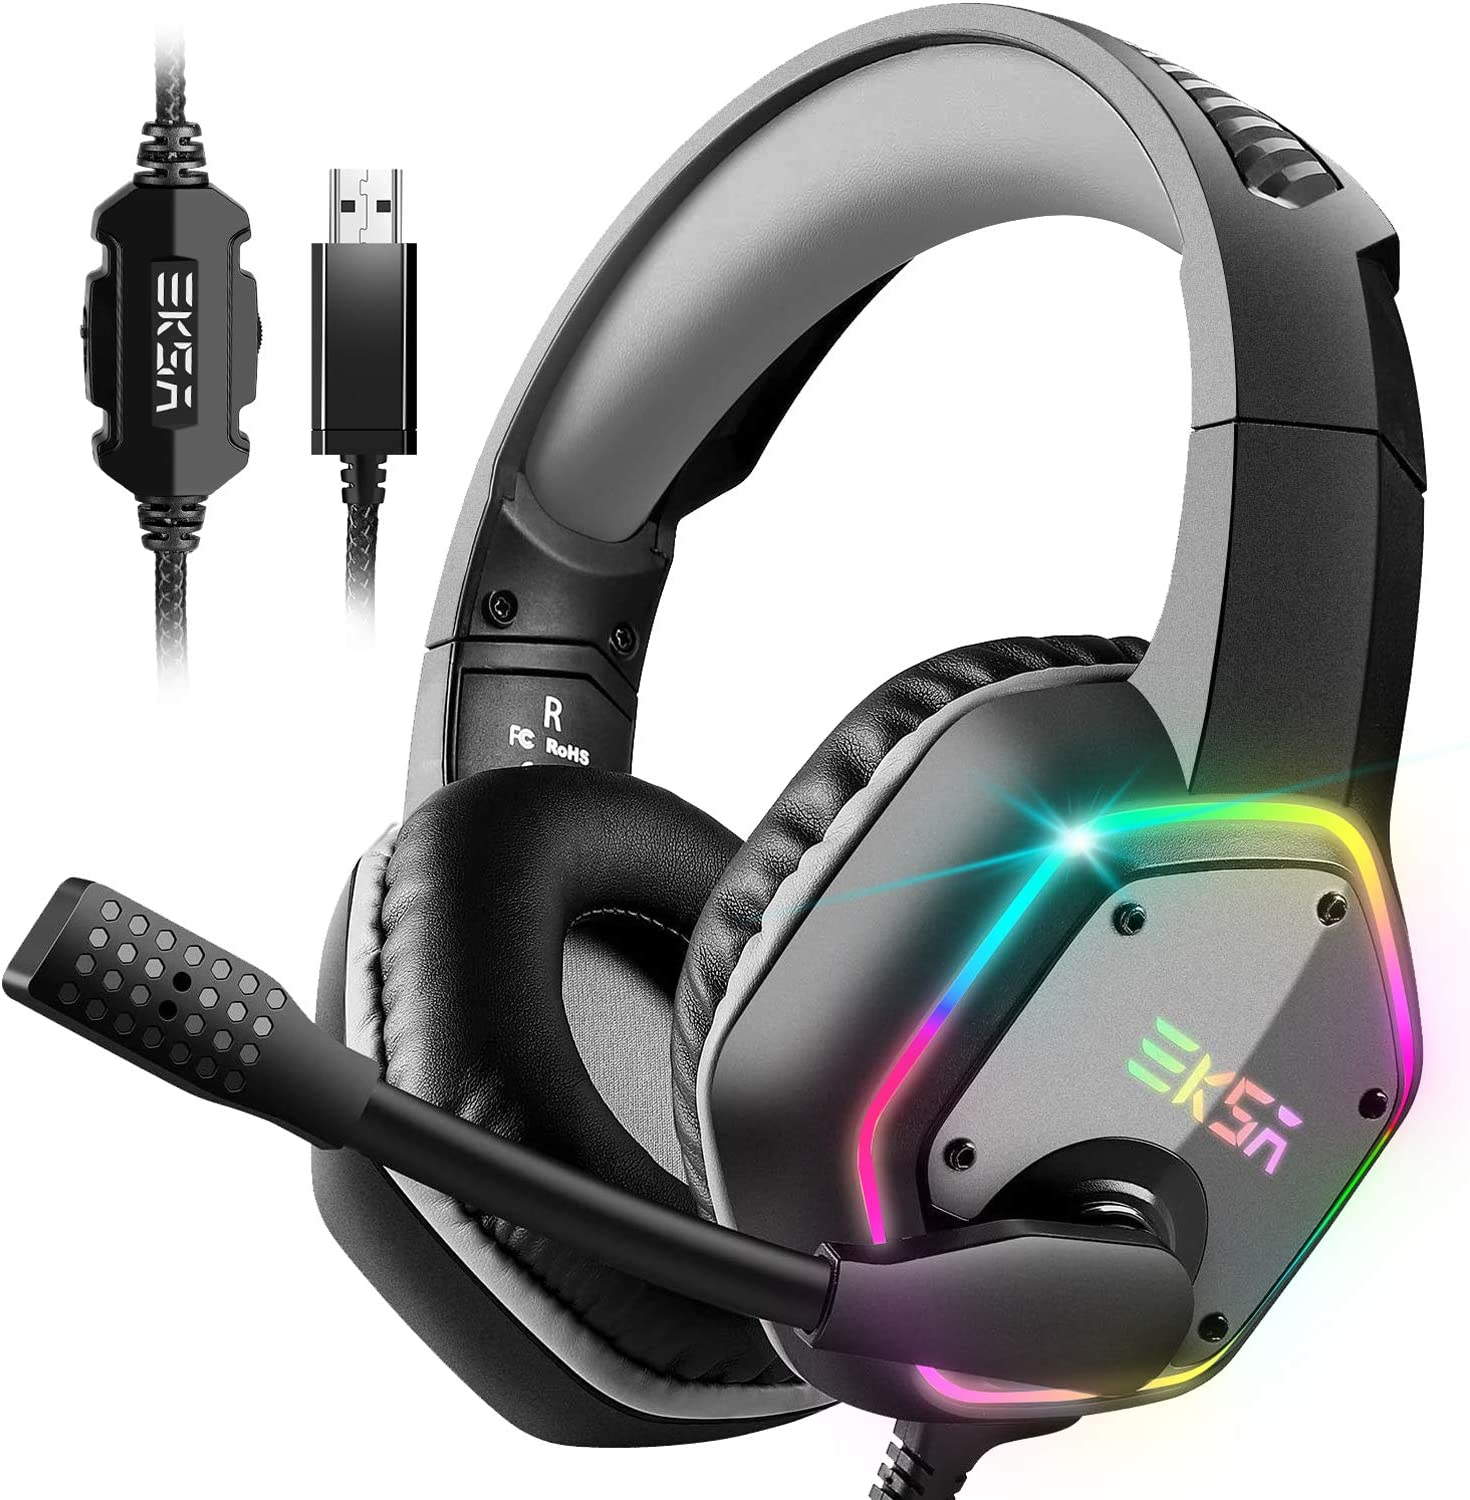 EKSA USB Gaming Headset PC Headset with 7.1 Surround Sound, Headset with Noise Cancelling Mic  WAS £32.98 NOW £19.79 w/code RVB6SCN5 @ Amazon